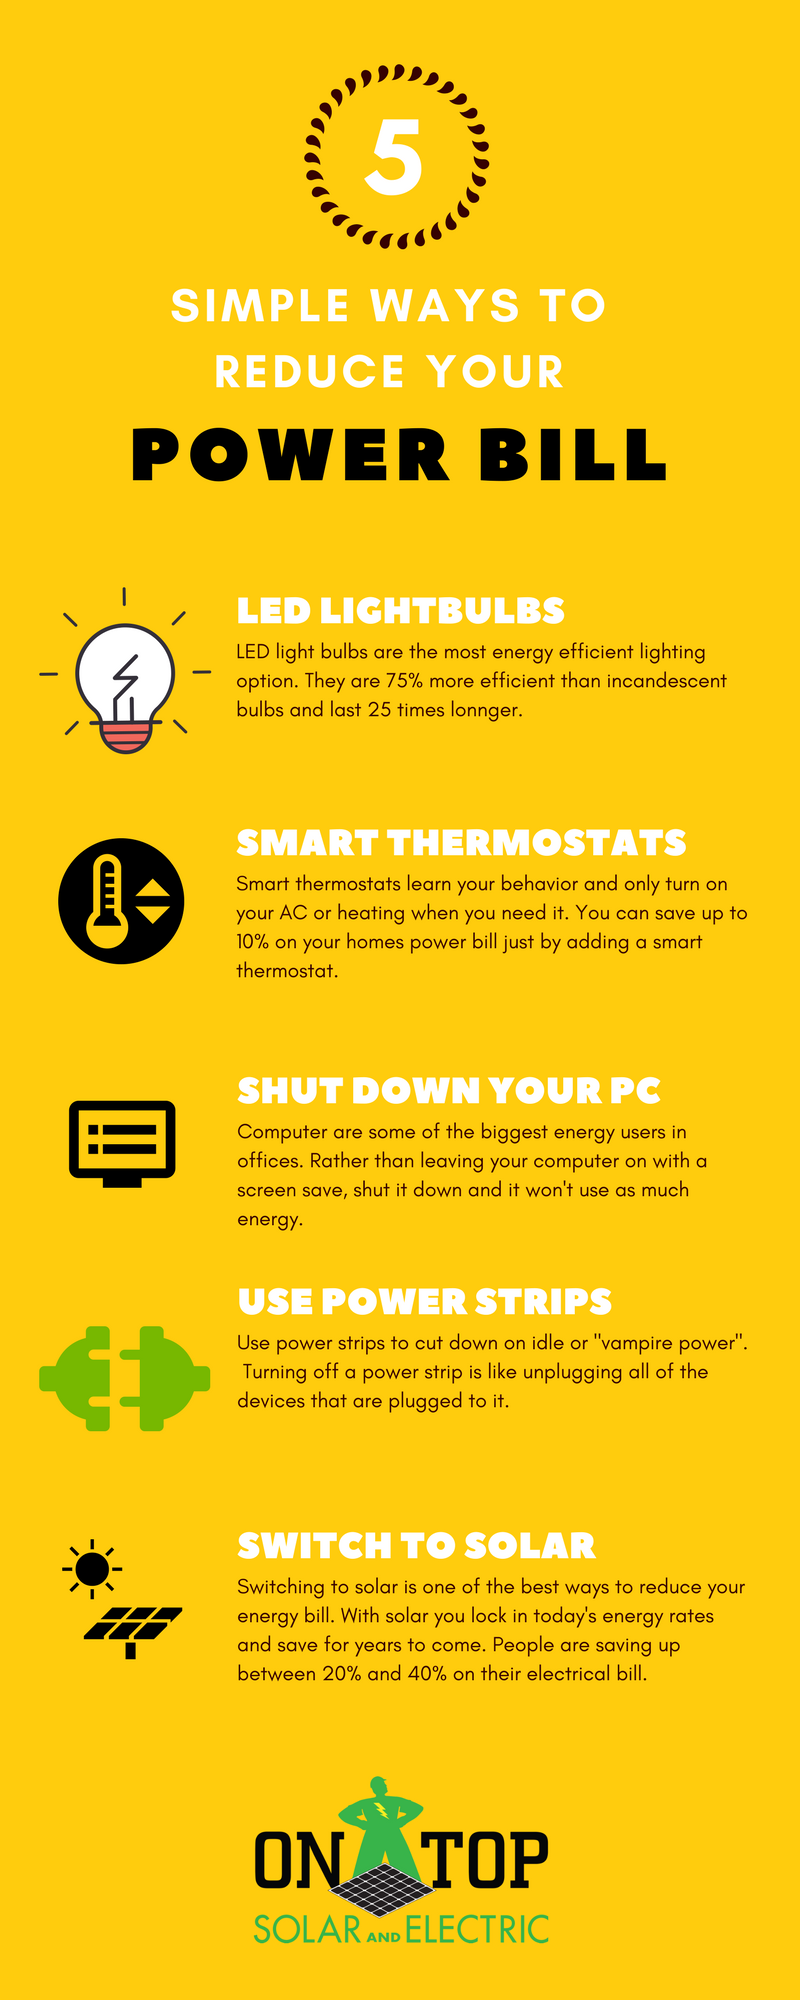 5 simple ways to reduce your power bill infographic park city 39 s top rated solar installer. Black Bedroom Furniture Sets. Home Design Ideas